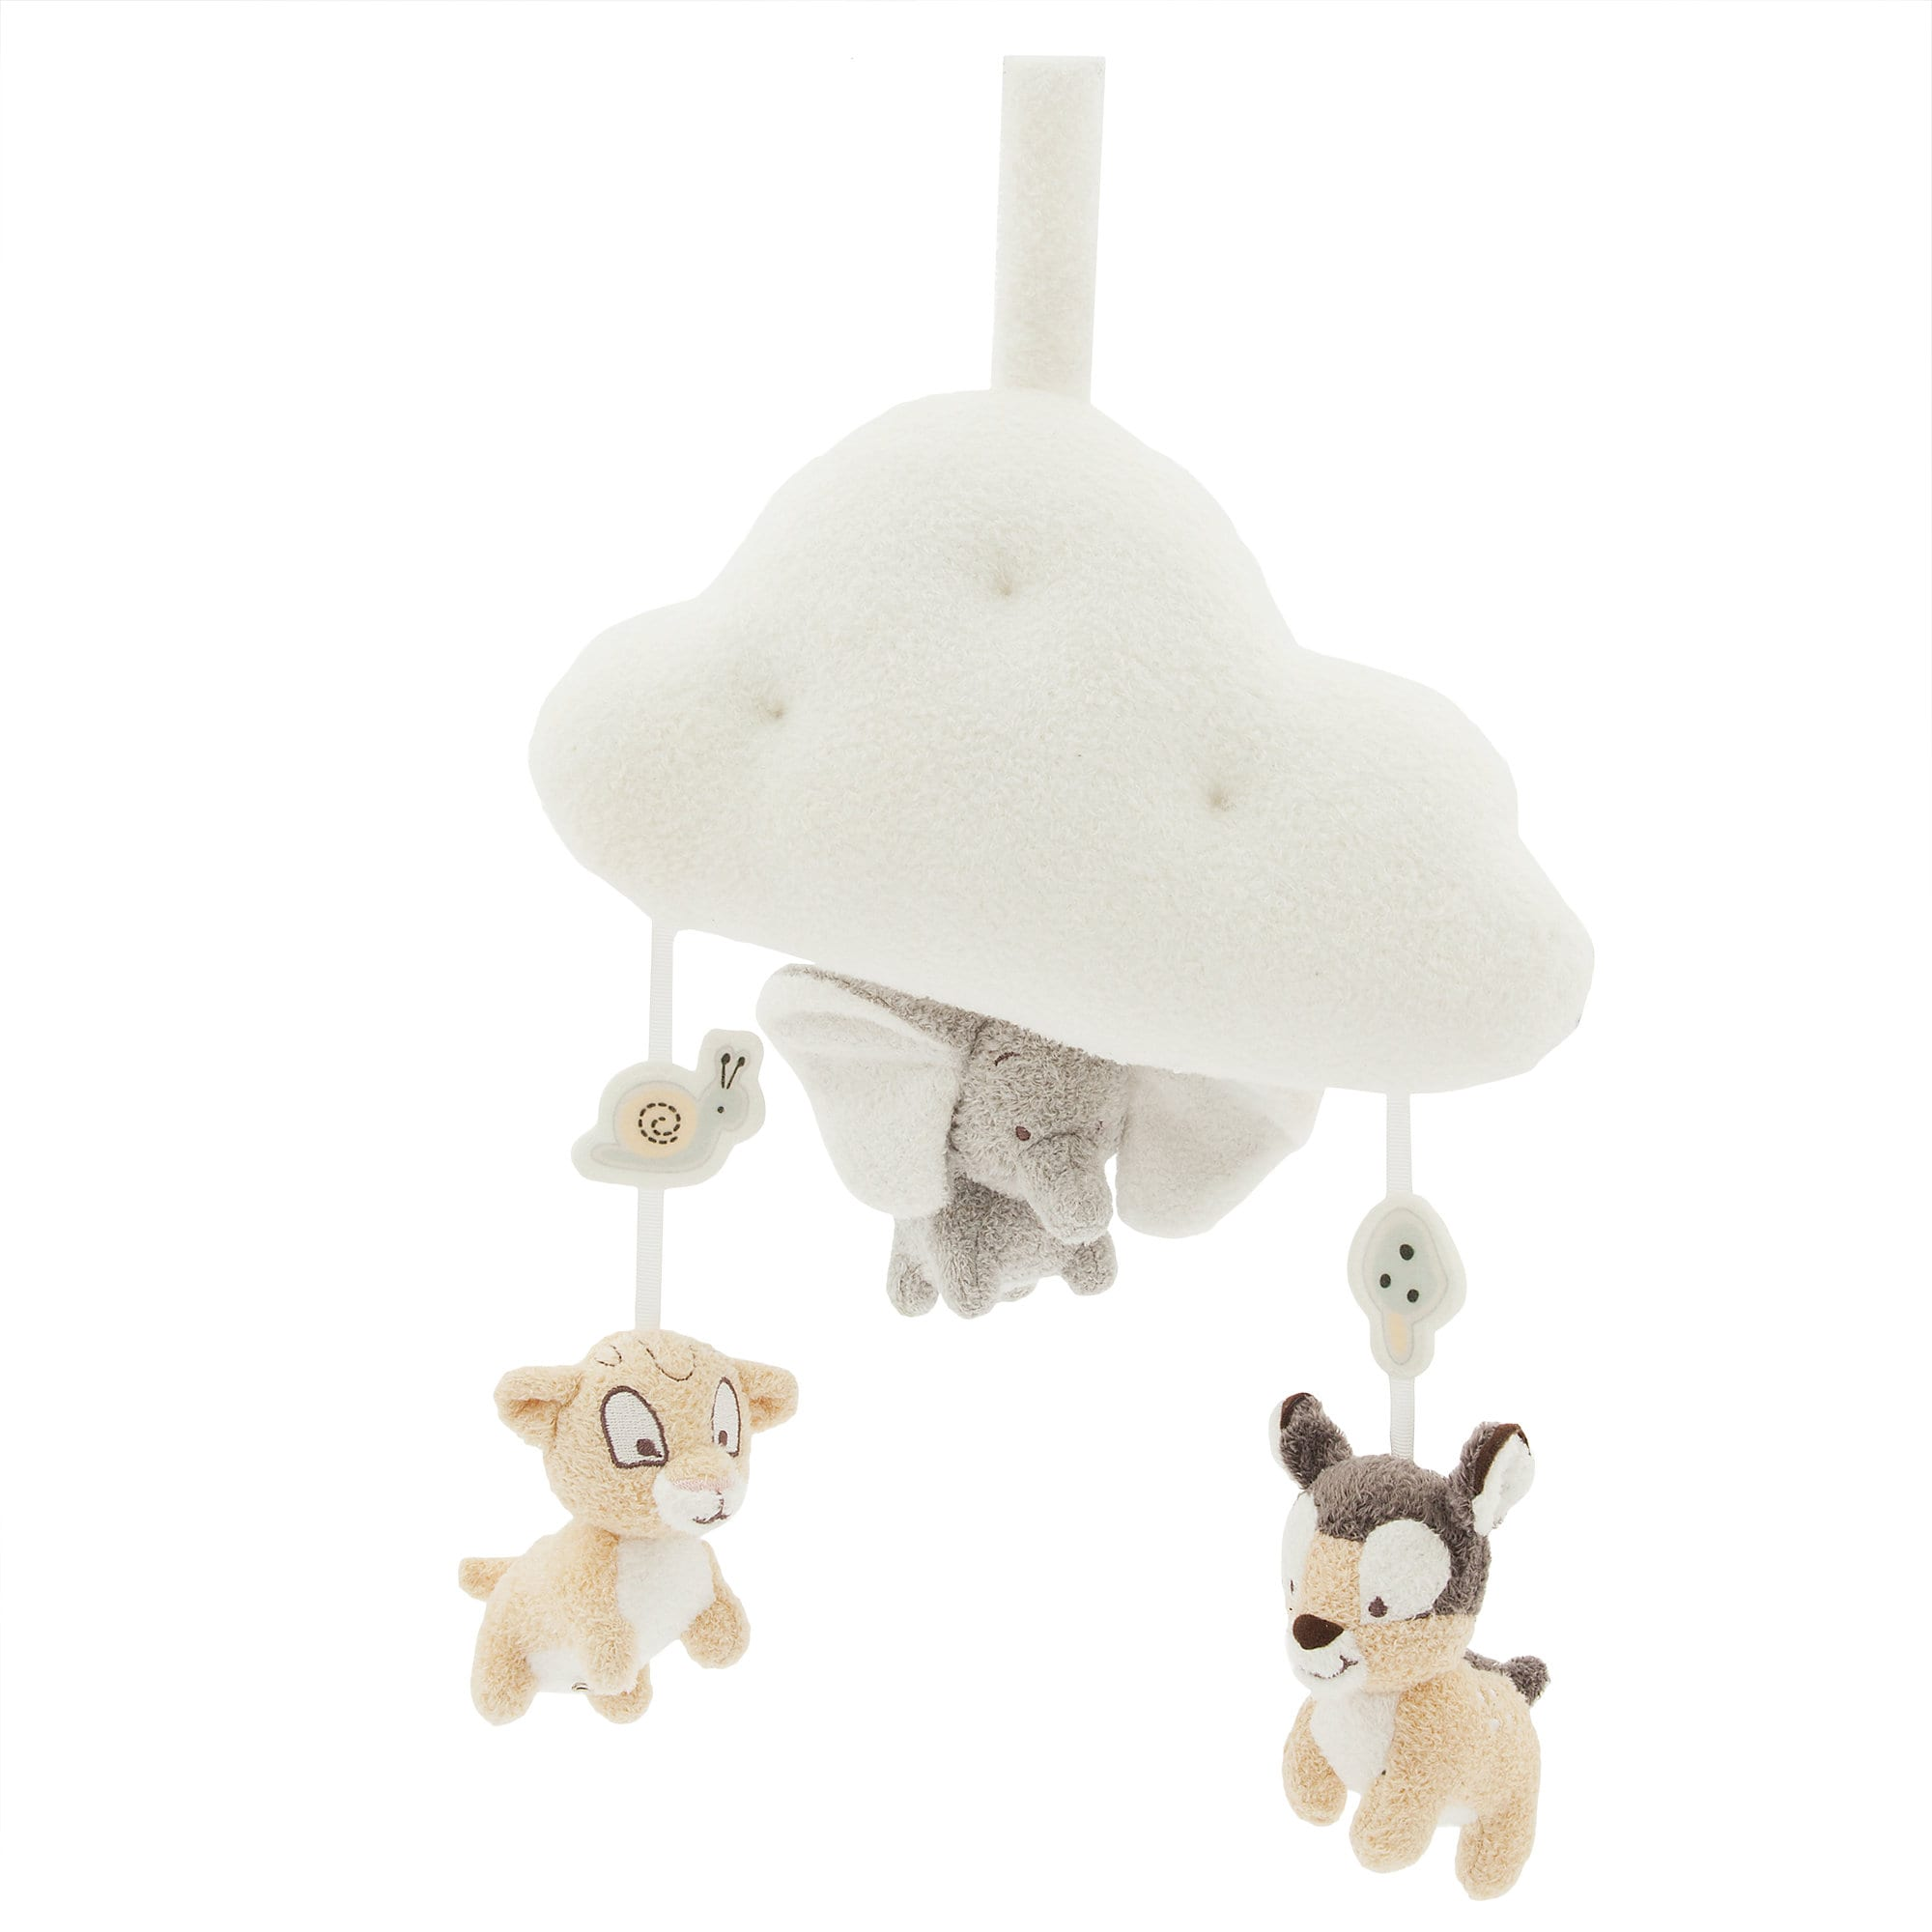 Disney Classics Musical Pull Toy for Baby